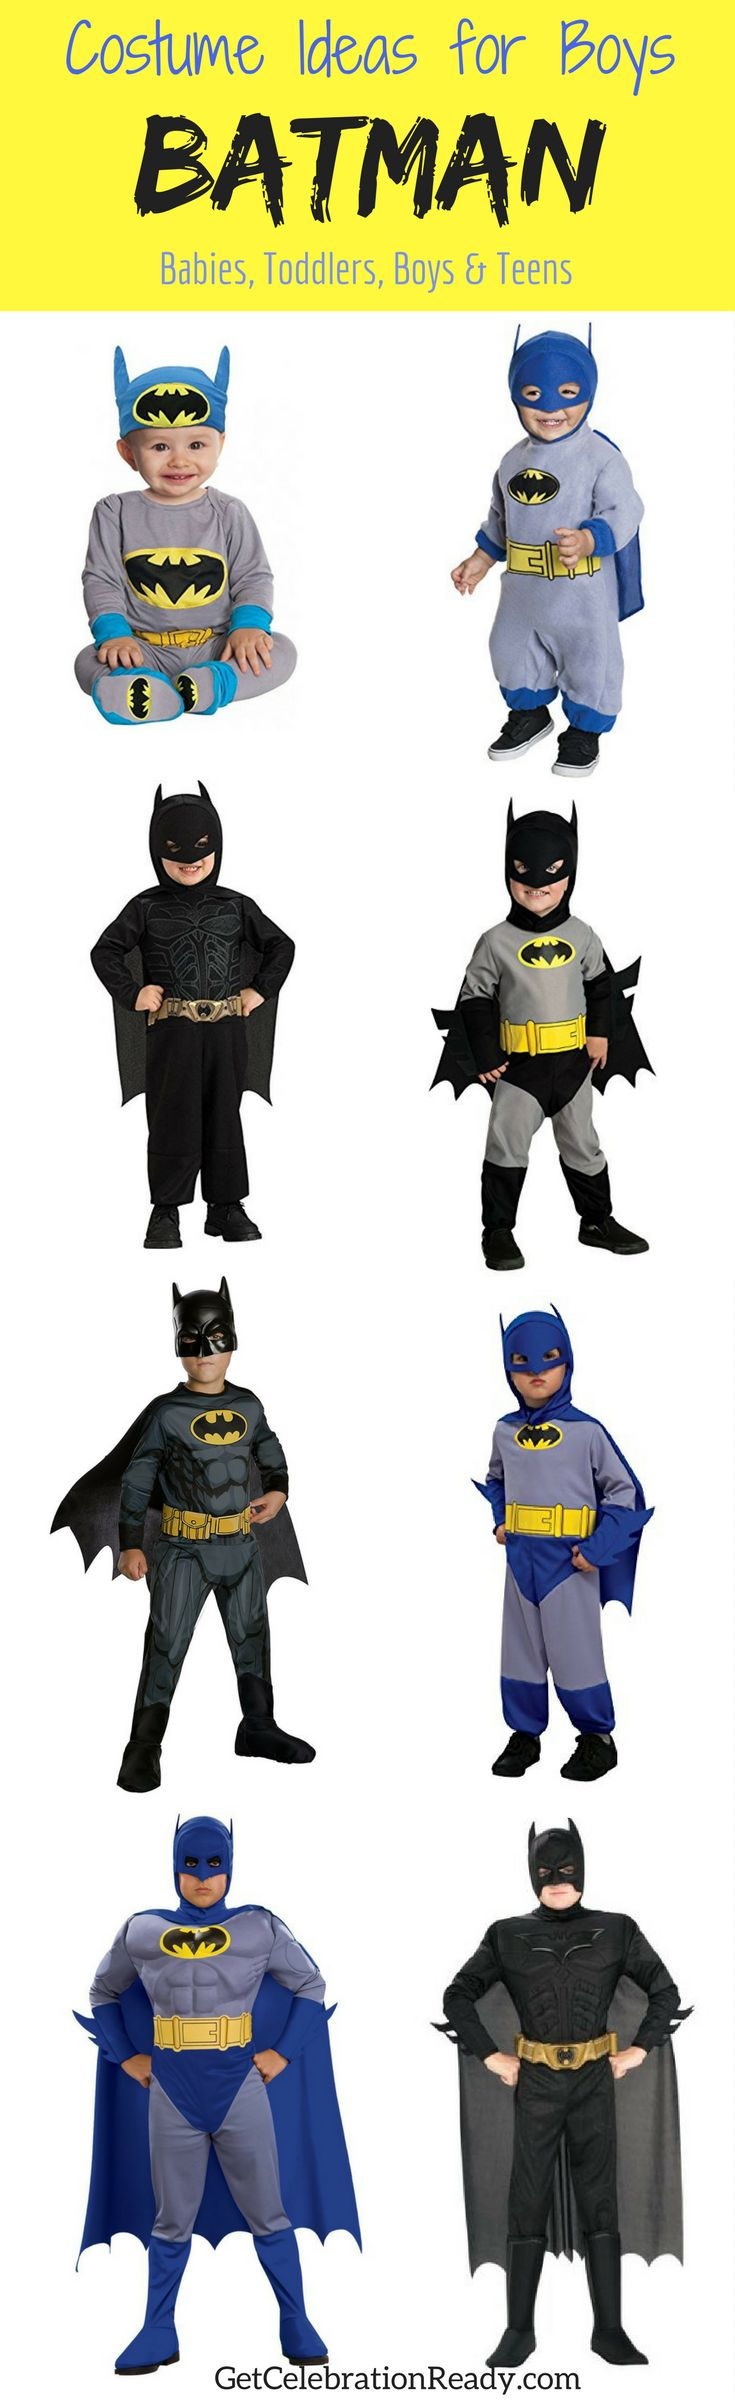 Looking for Halloween boys costumes? Batman is perfect because there are so many Batman movies and TV shows to choose your favorite Batman costume from. Whether it's The Dark Knight, Batman v Superman: Dawn of Justice or the Justice League movie you like, there's a different Batman costumes from each. Click the image to see them all.